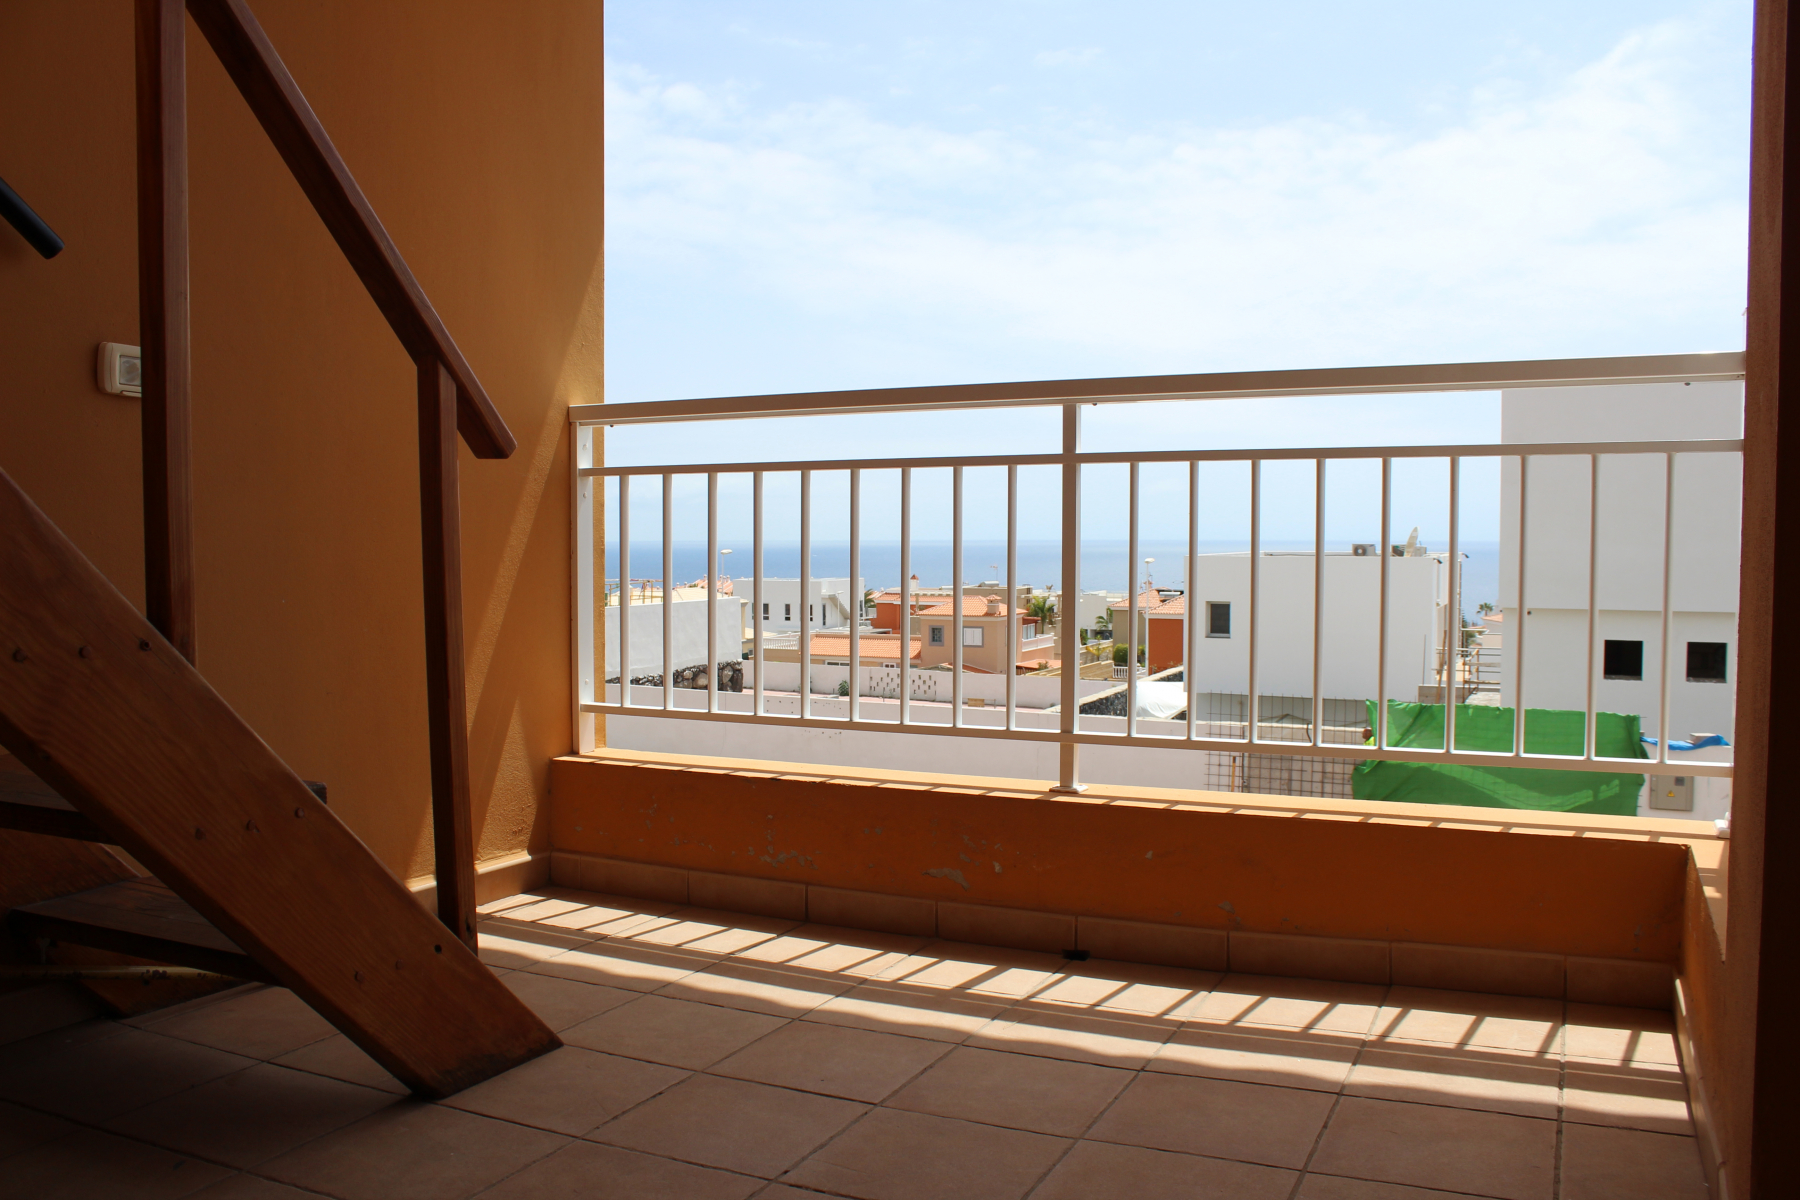 Properties for Sale in Tenerife, Canary Islands, Spain | SylkWayStar Real Estate. Apartment with 2 bedrooms in Callao Salvaje. Image-25712